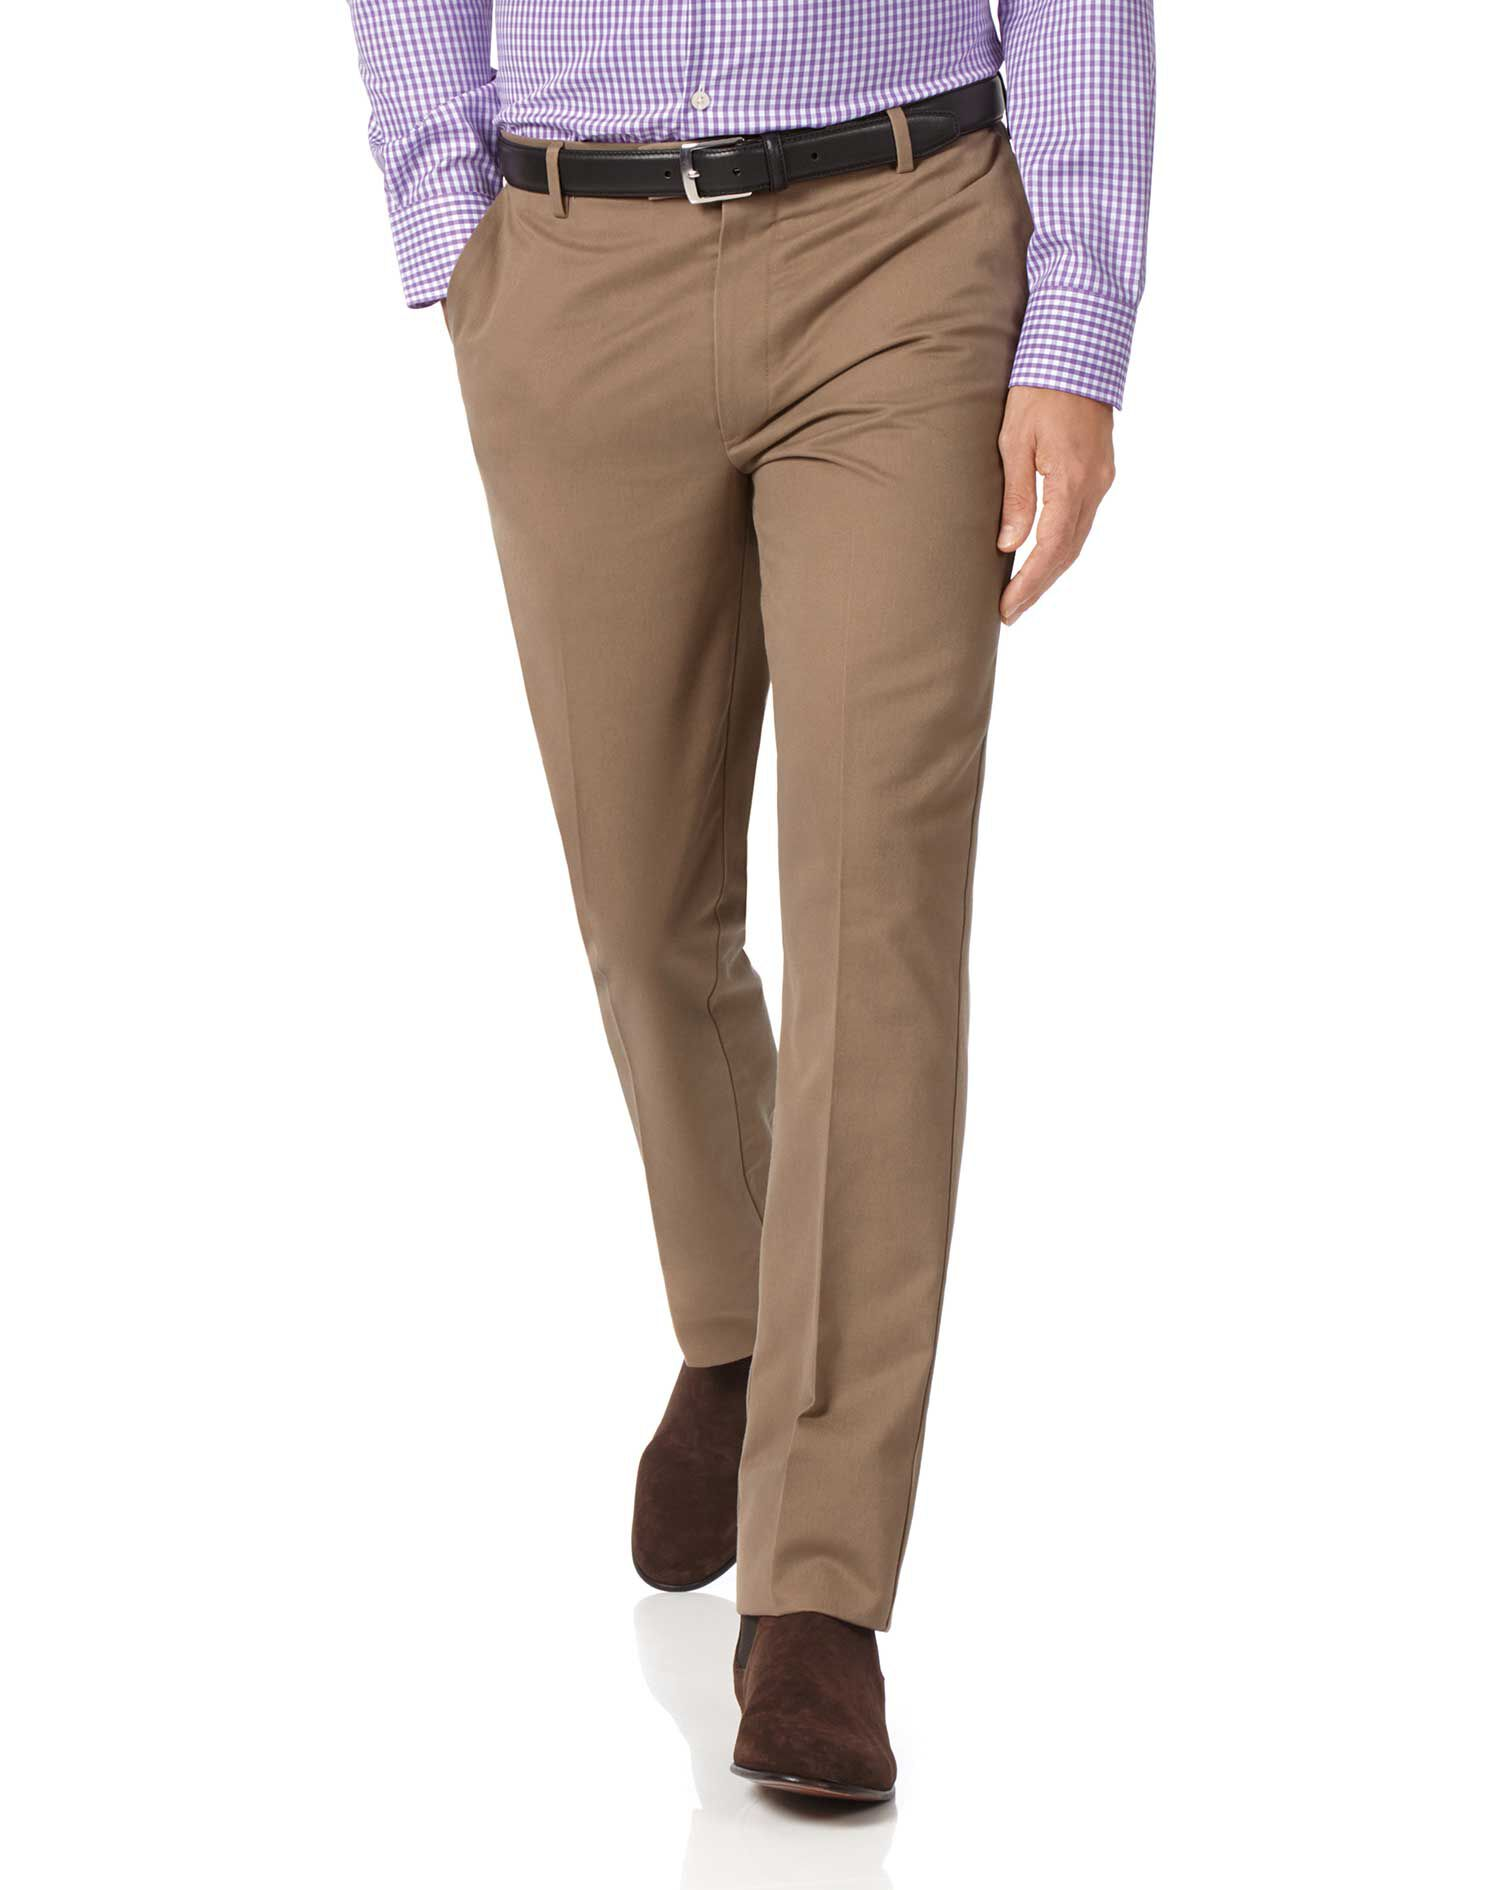 Tan Extra Slim Fit Flat Front Non-Iron Cotton Chino Trousers Size W30 L38 by Charles Tyrwhitt